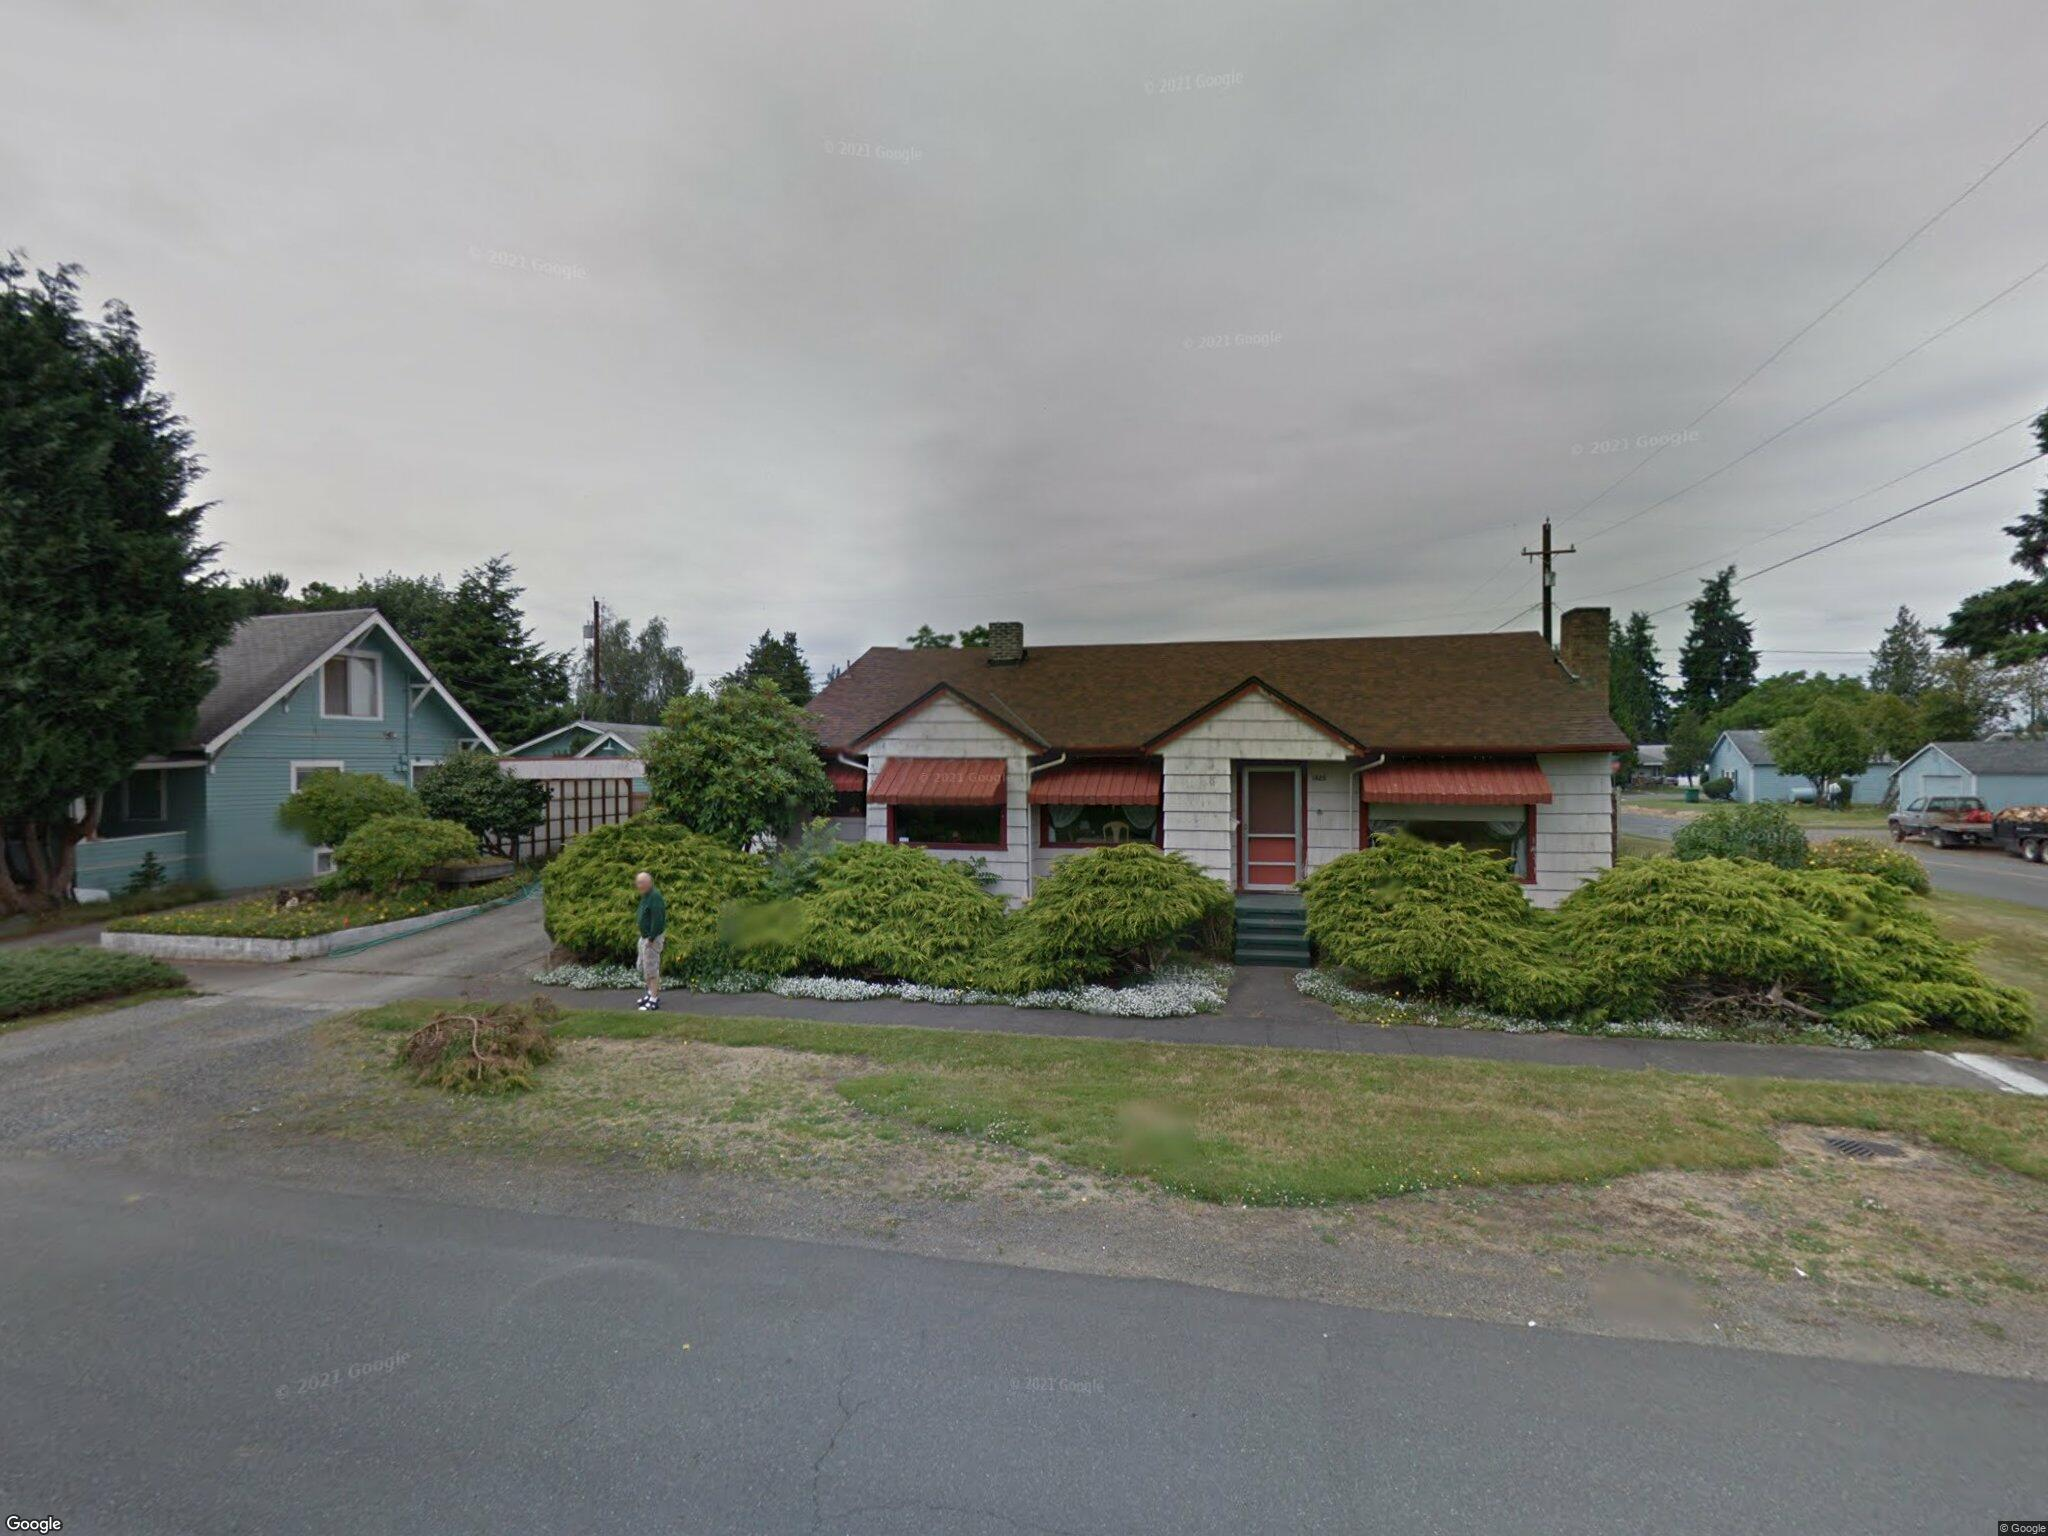 Marysville Wa Zip Code Map.1825 7th St Marysville Wa 98270 4 Bed 1 Bath Single Family